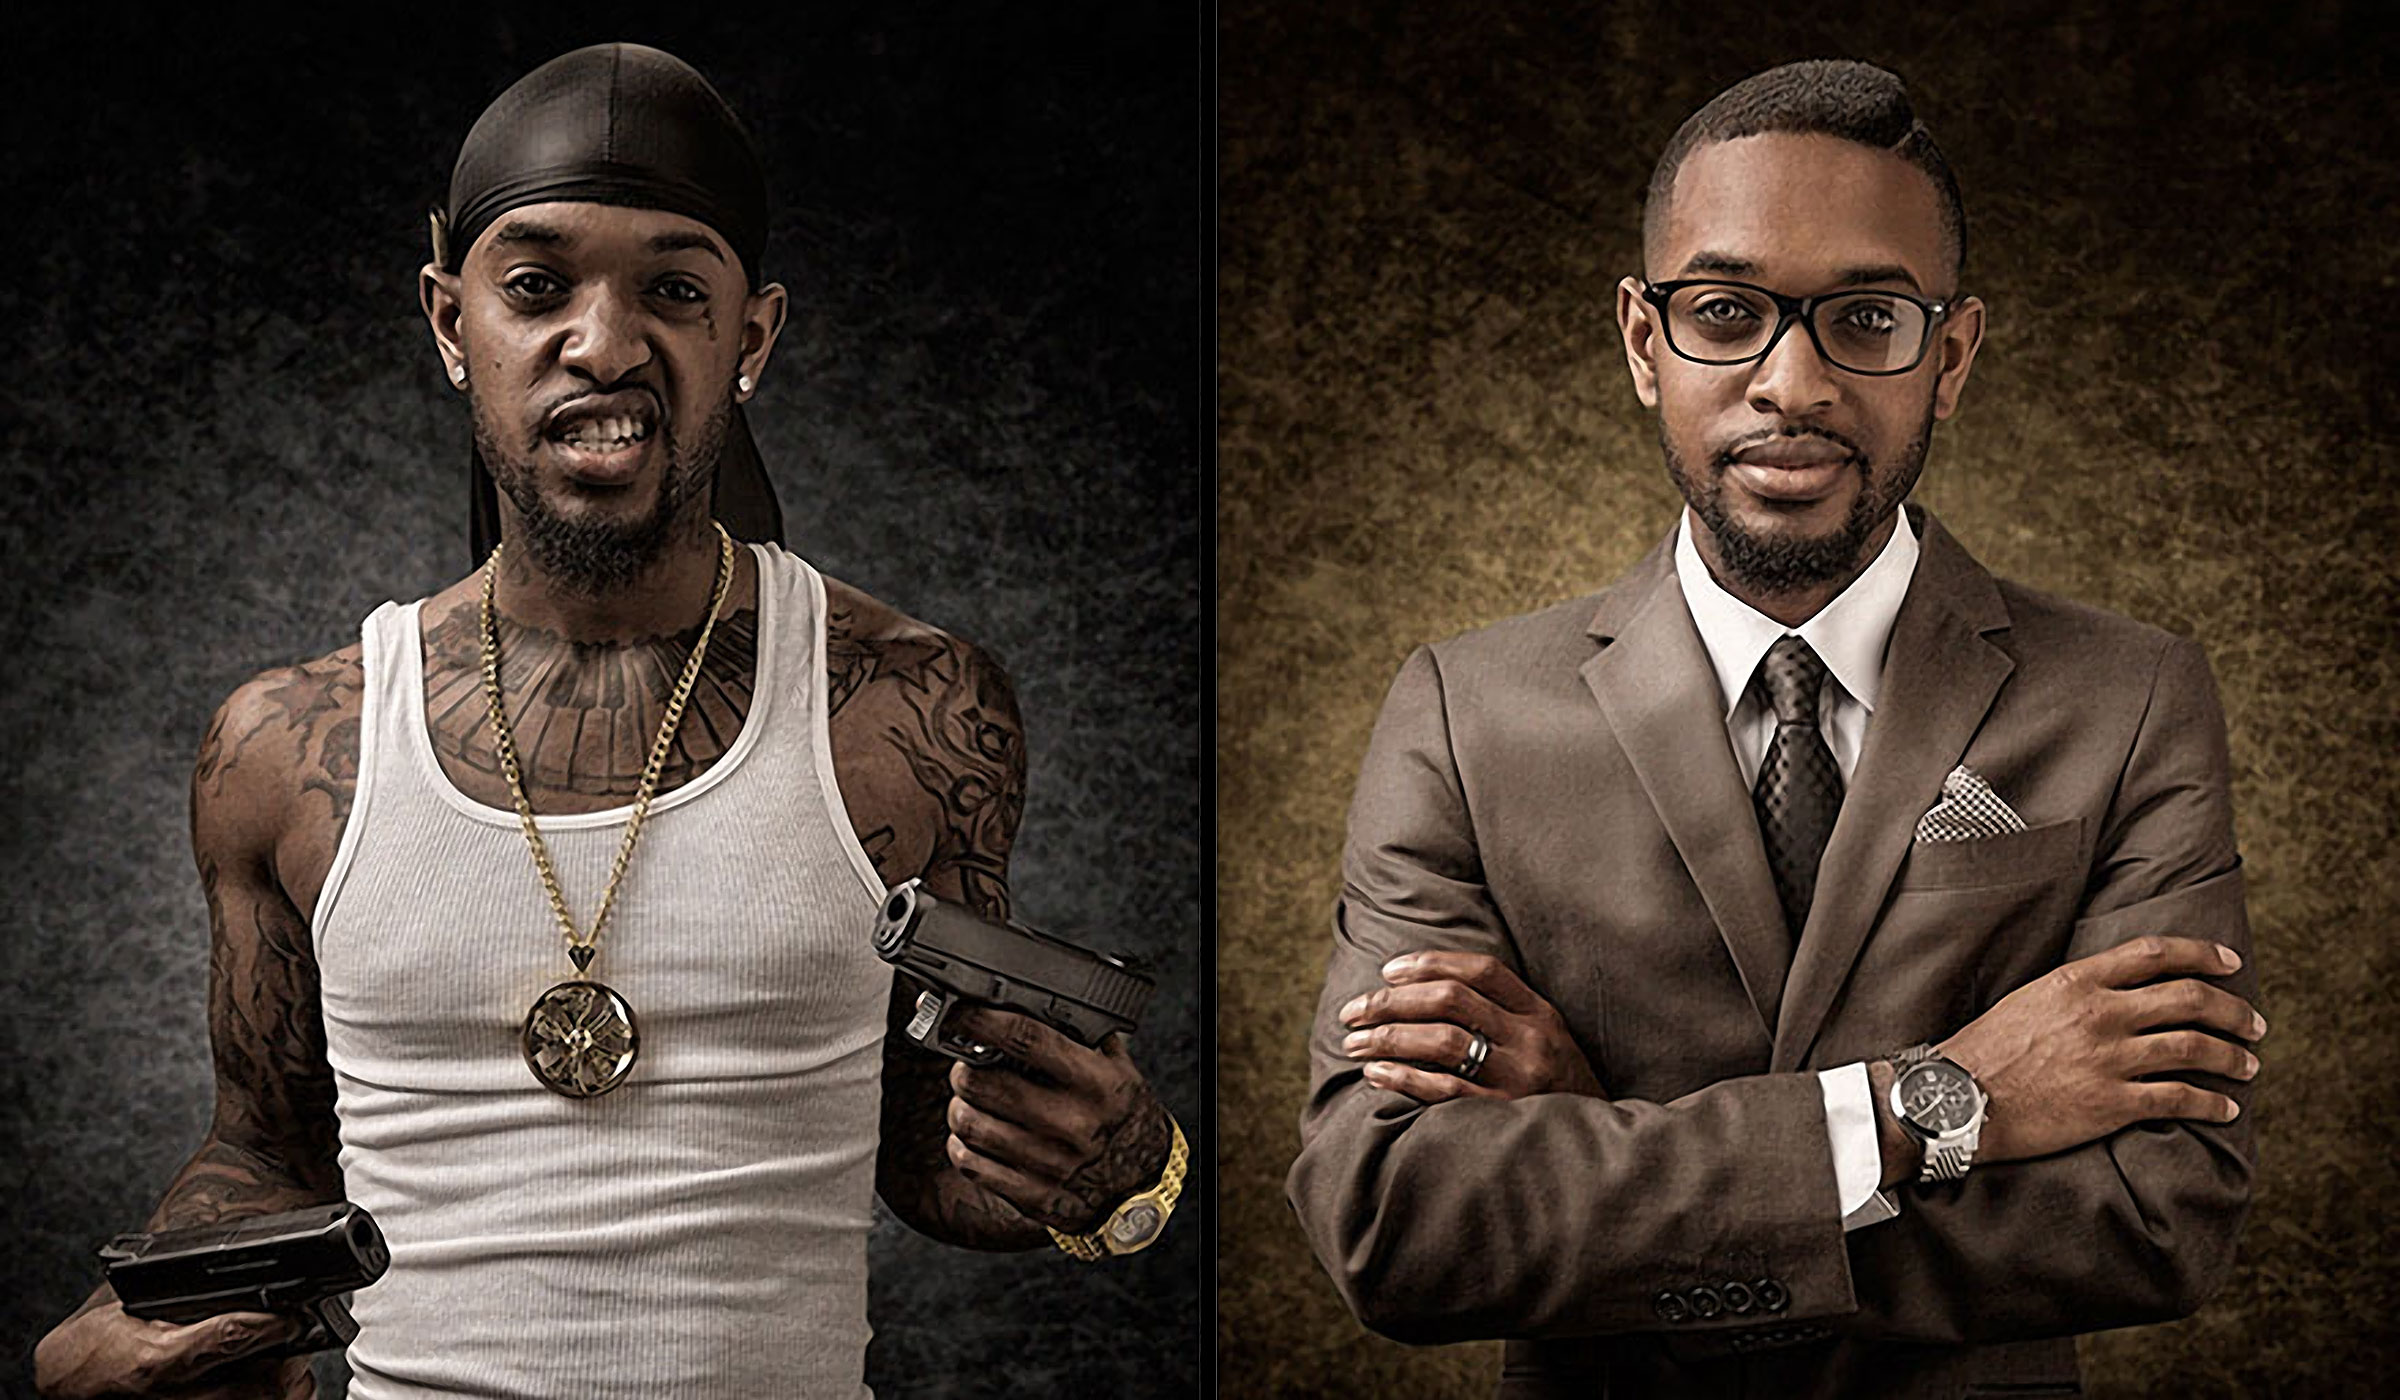 JUDGING AMERICA PREJUDICE: PHOTO SERIES BY JOEL PARES THAT ALTERNATES BETWEEN JUDGEMENT AND REALITY